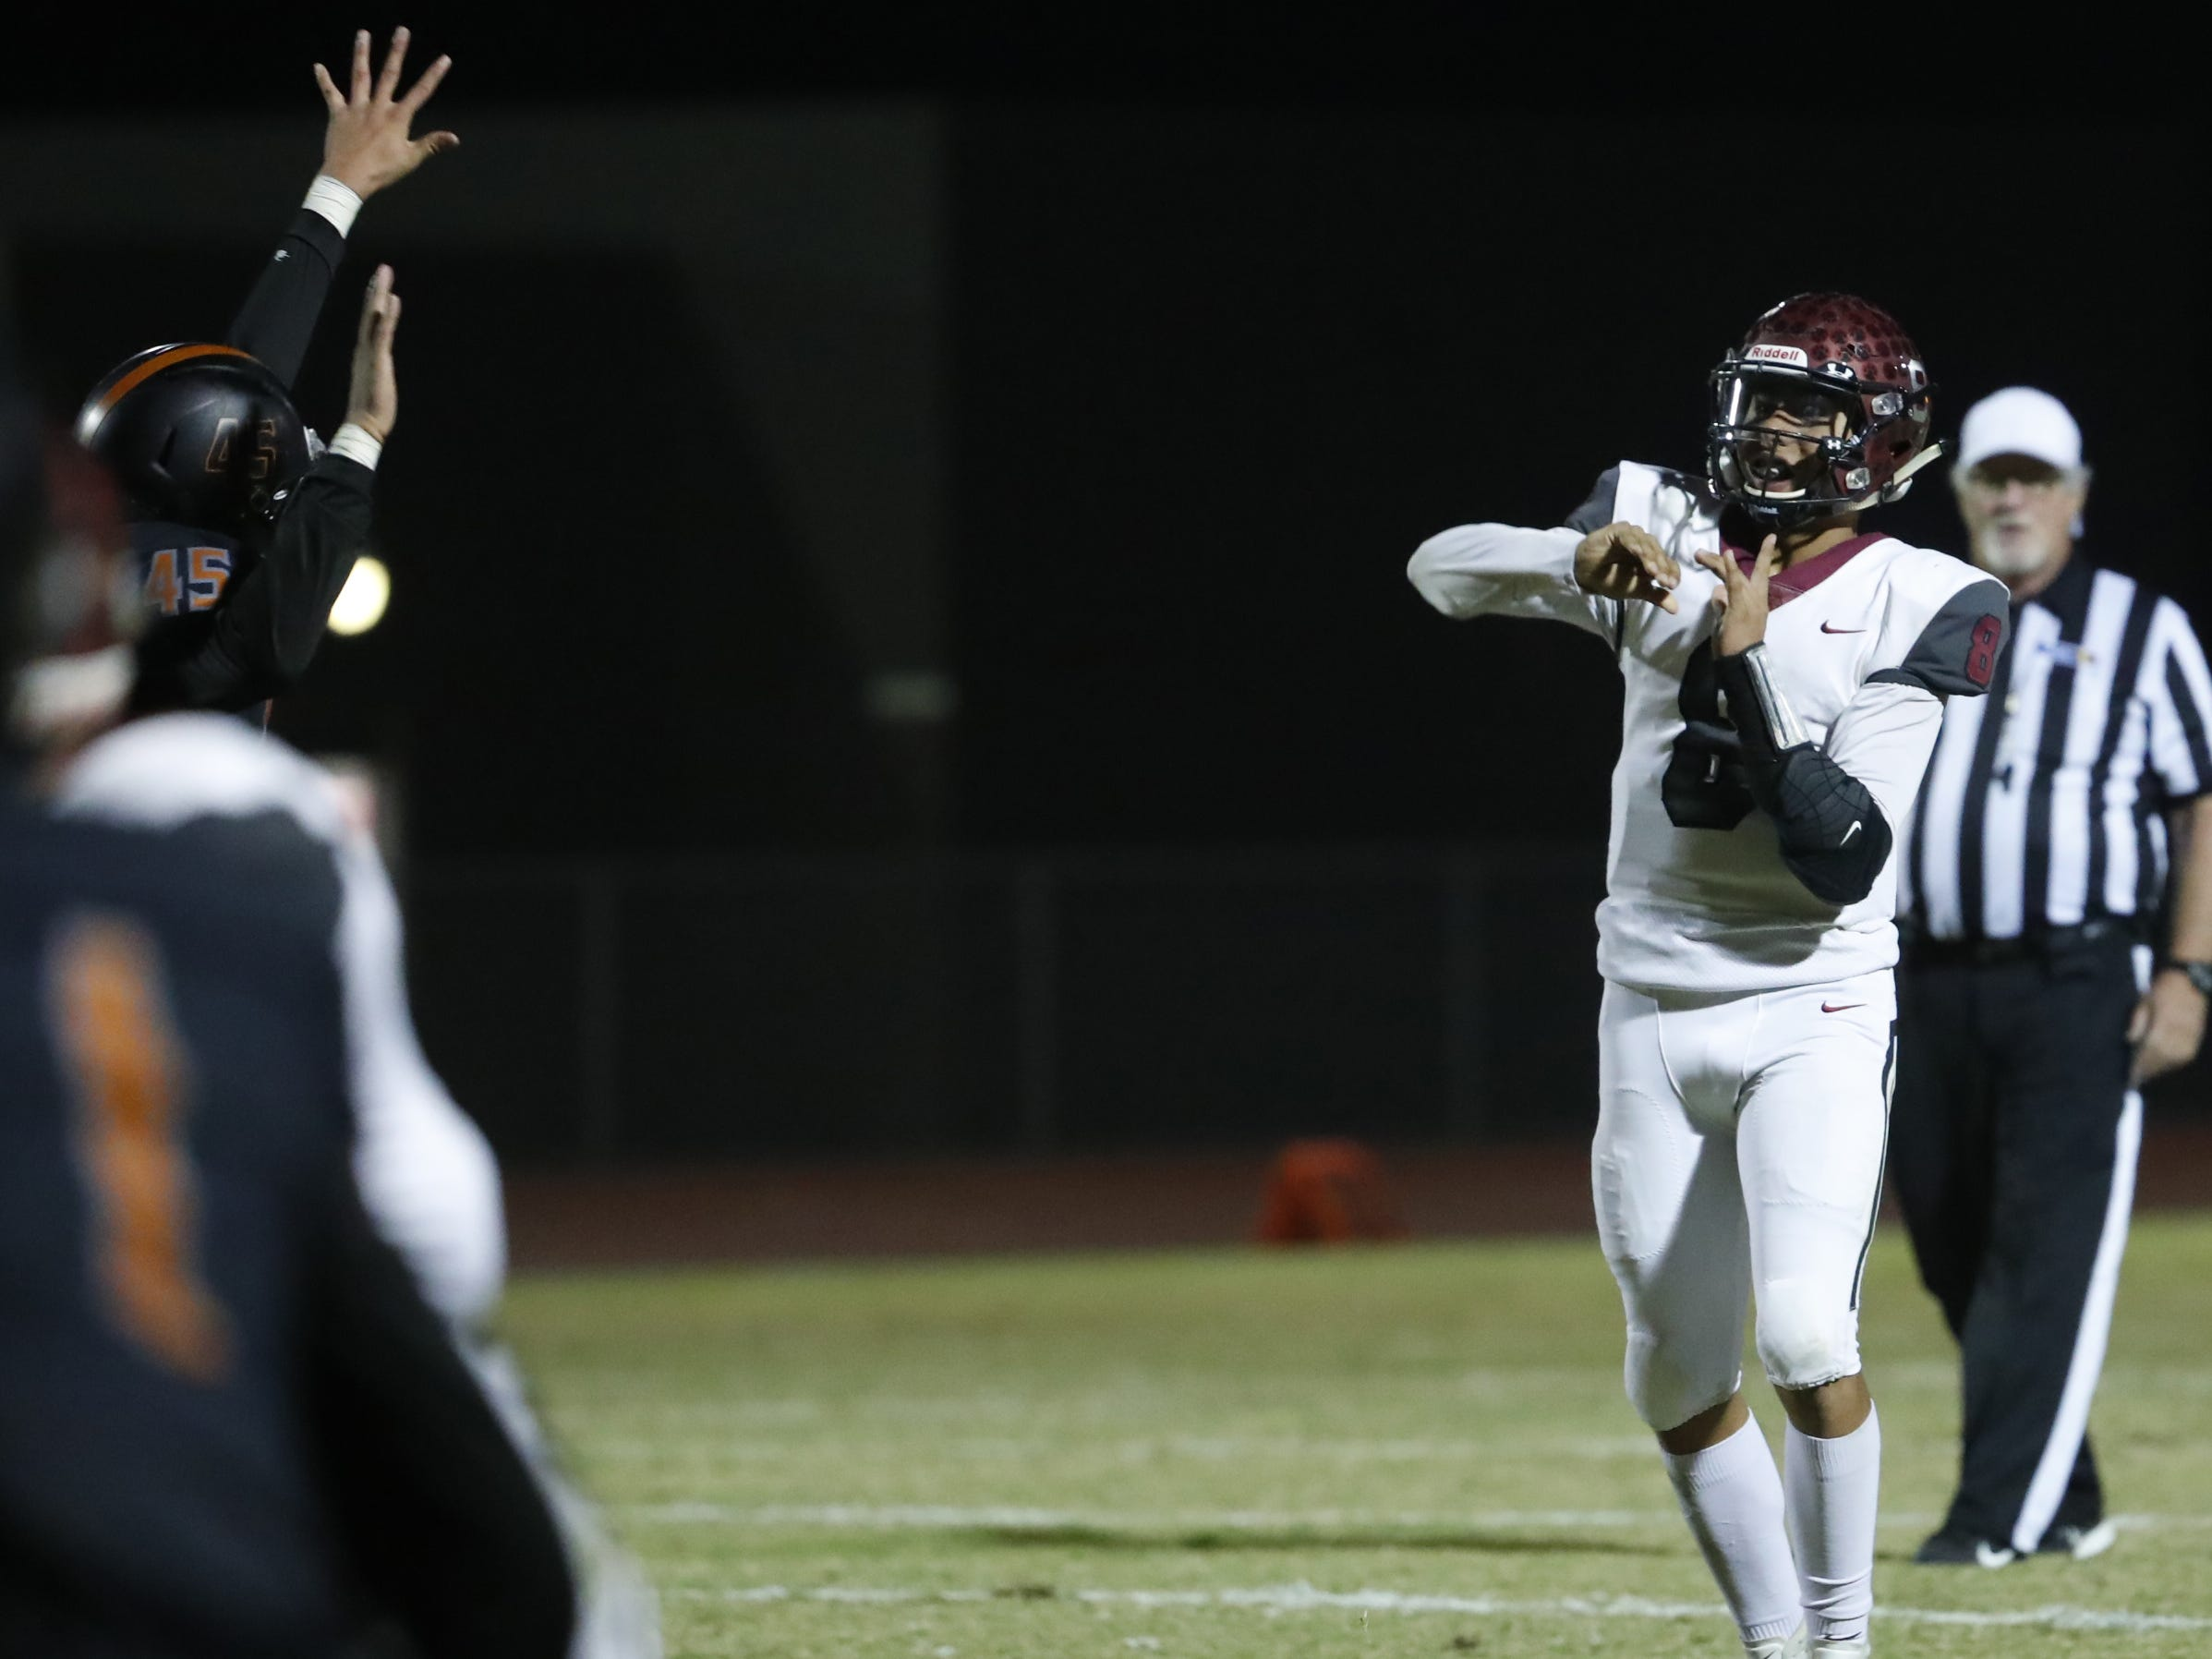 Walden Grove's Alex Lopez (8) throws a screen pass against Desert Edge during the first round of the AIA State Football Playoffs at Desert Edge High School in Goodyear, Ariz. on Nov. 2, 2018.